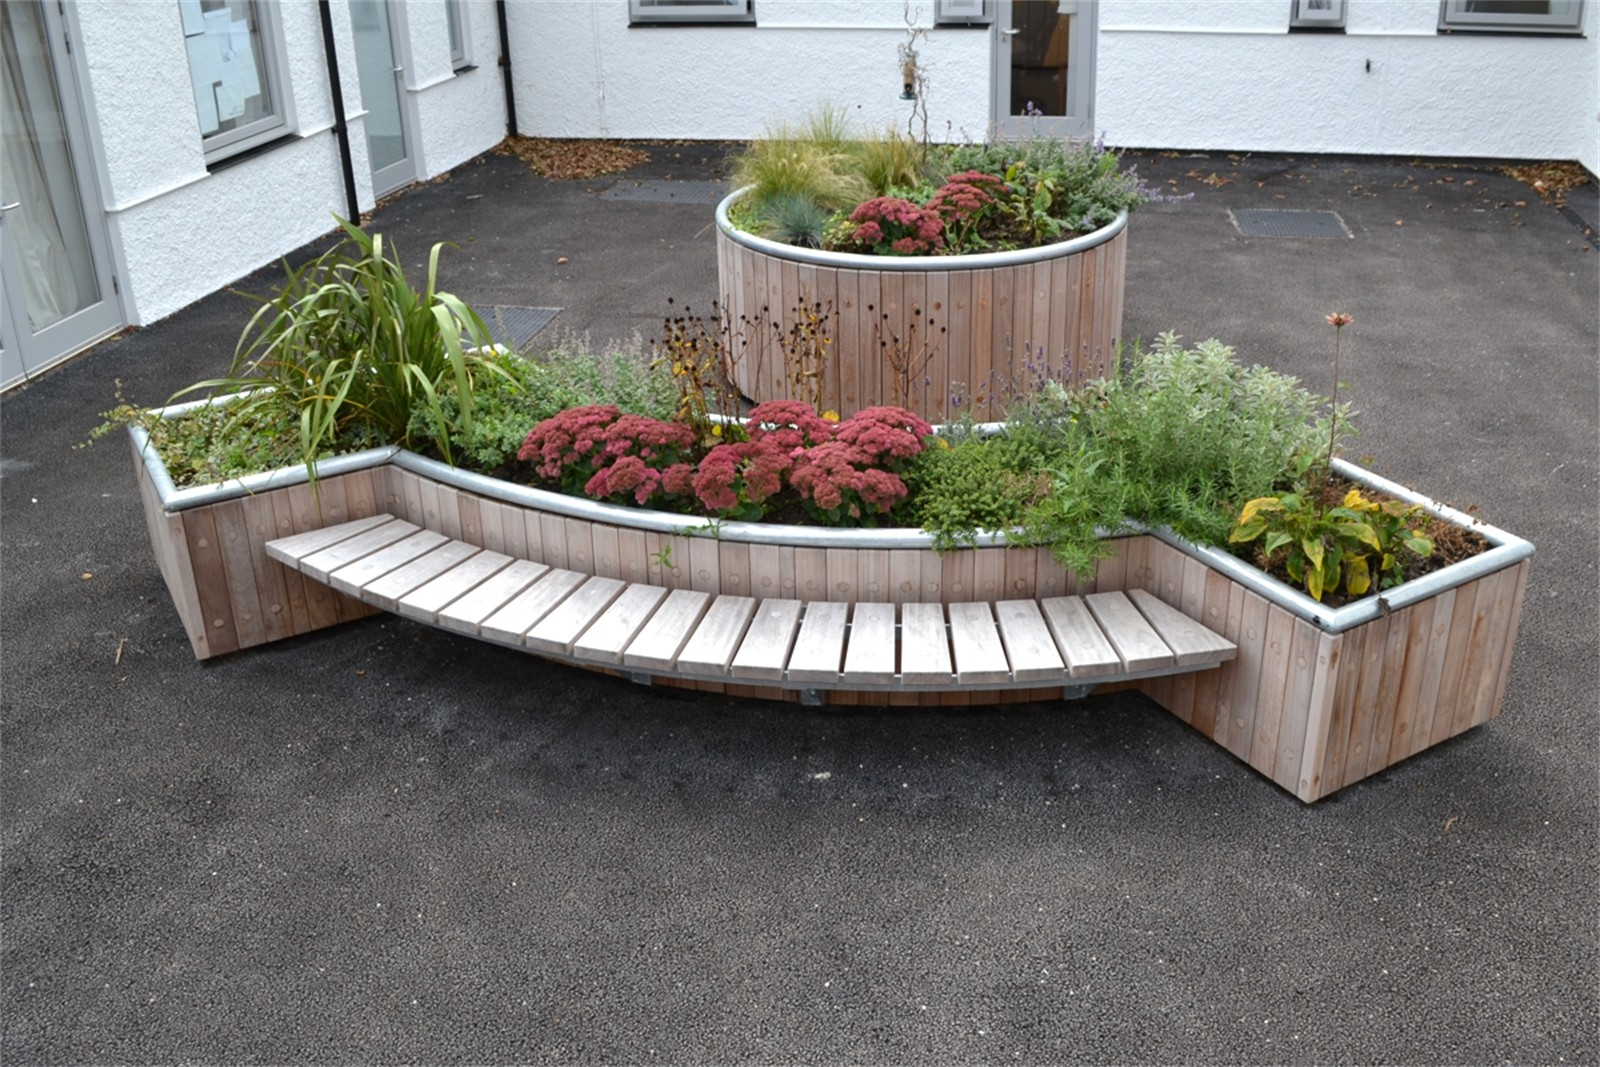 47pca44 - Castleton curved planter with bench